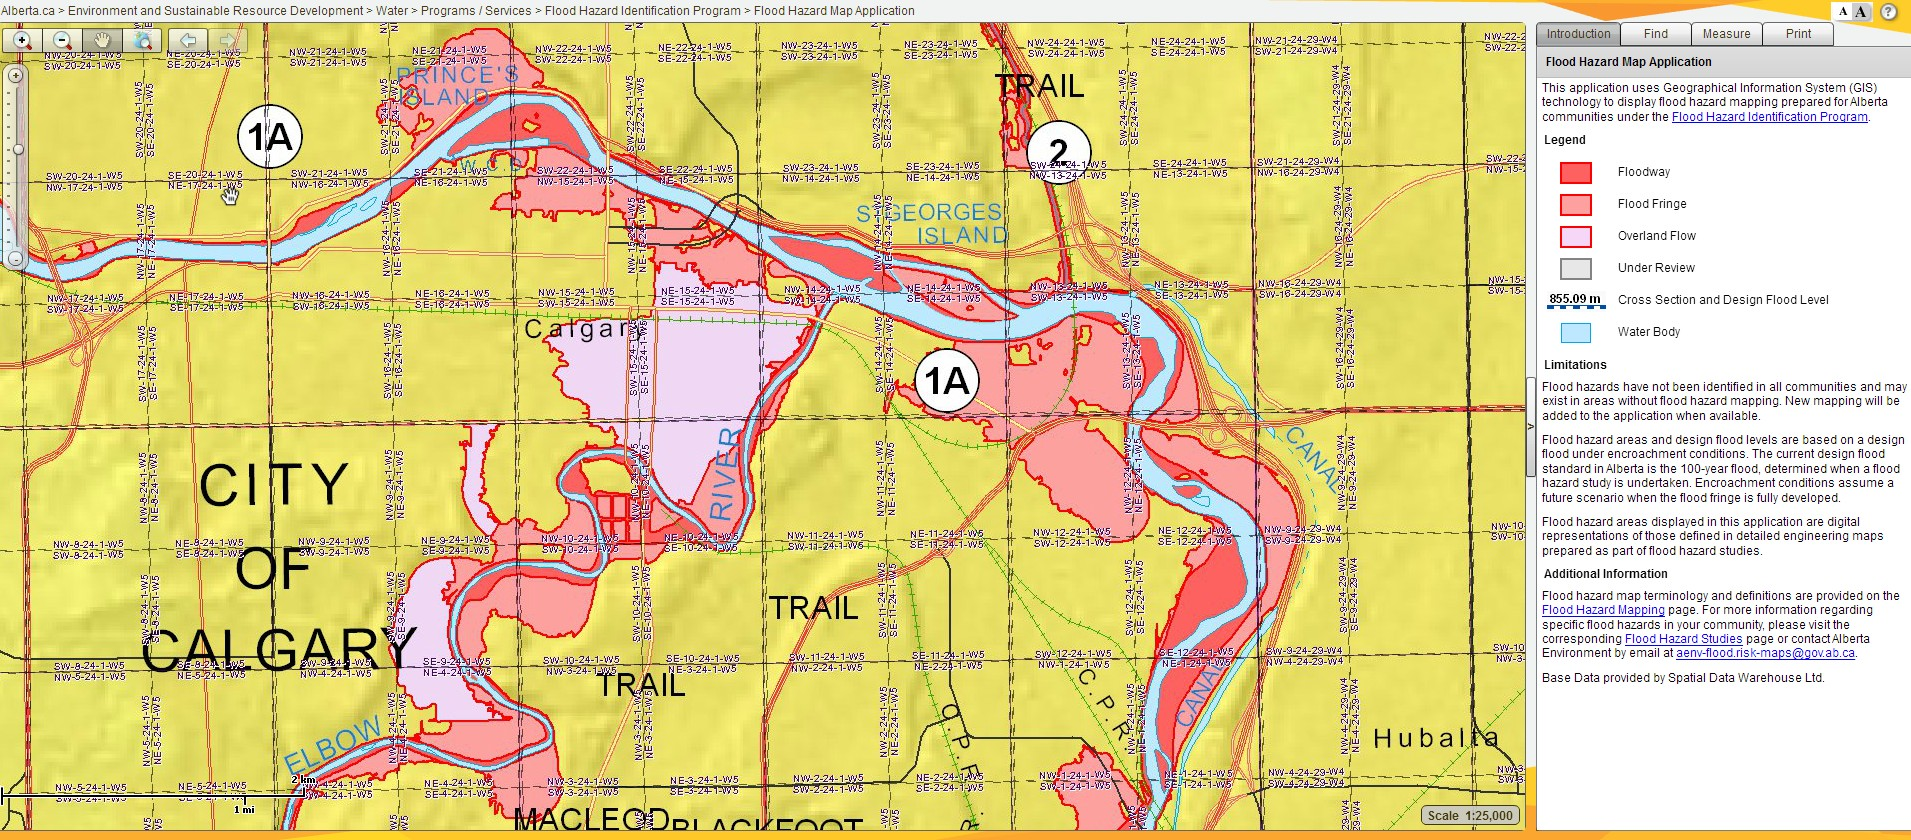 Calgary Flood Map Calgary Flood Map | compressportnederland Calgary Flood Map